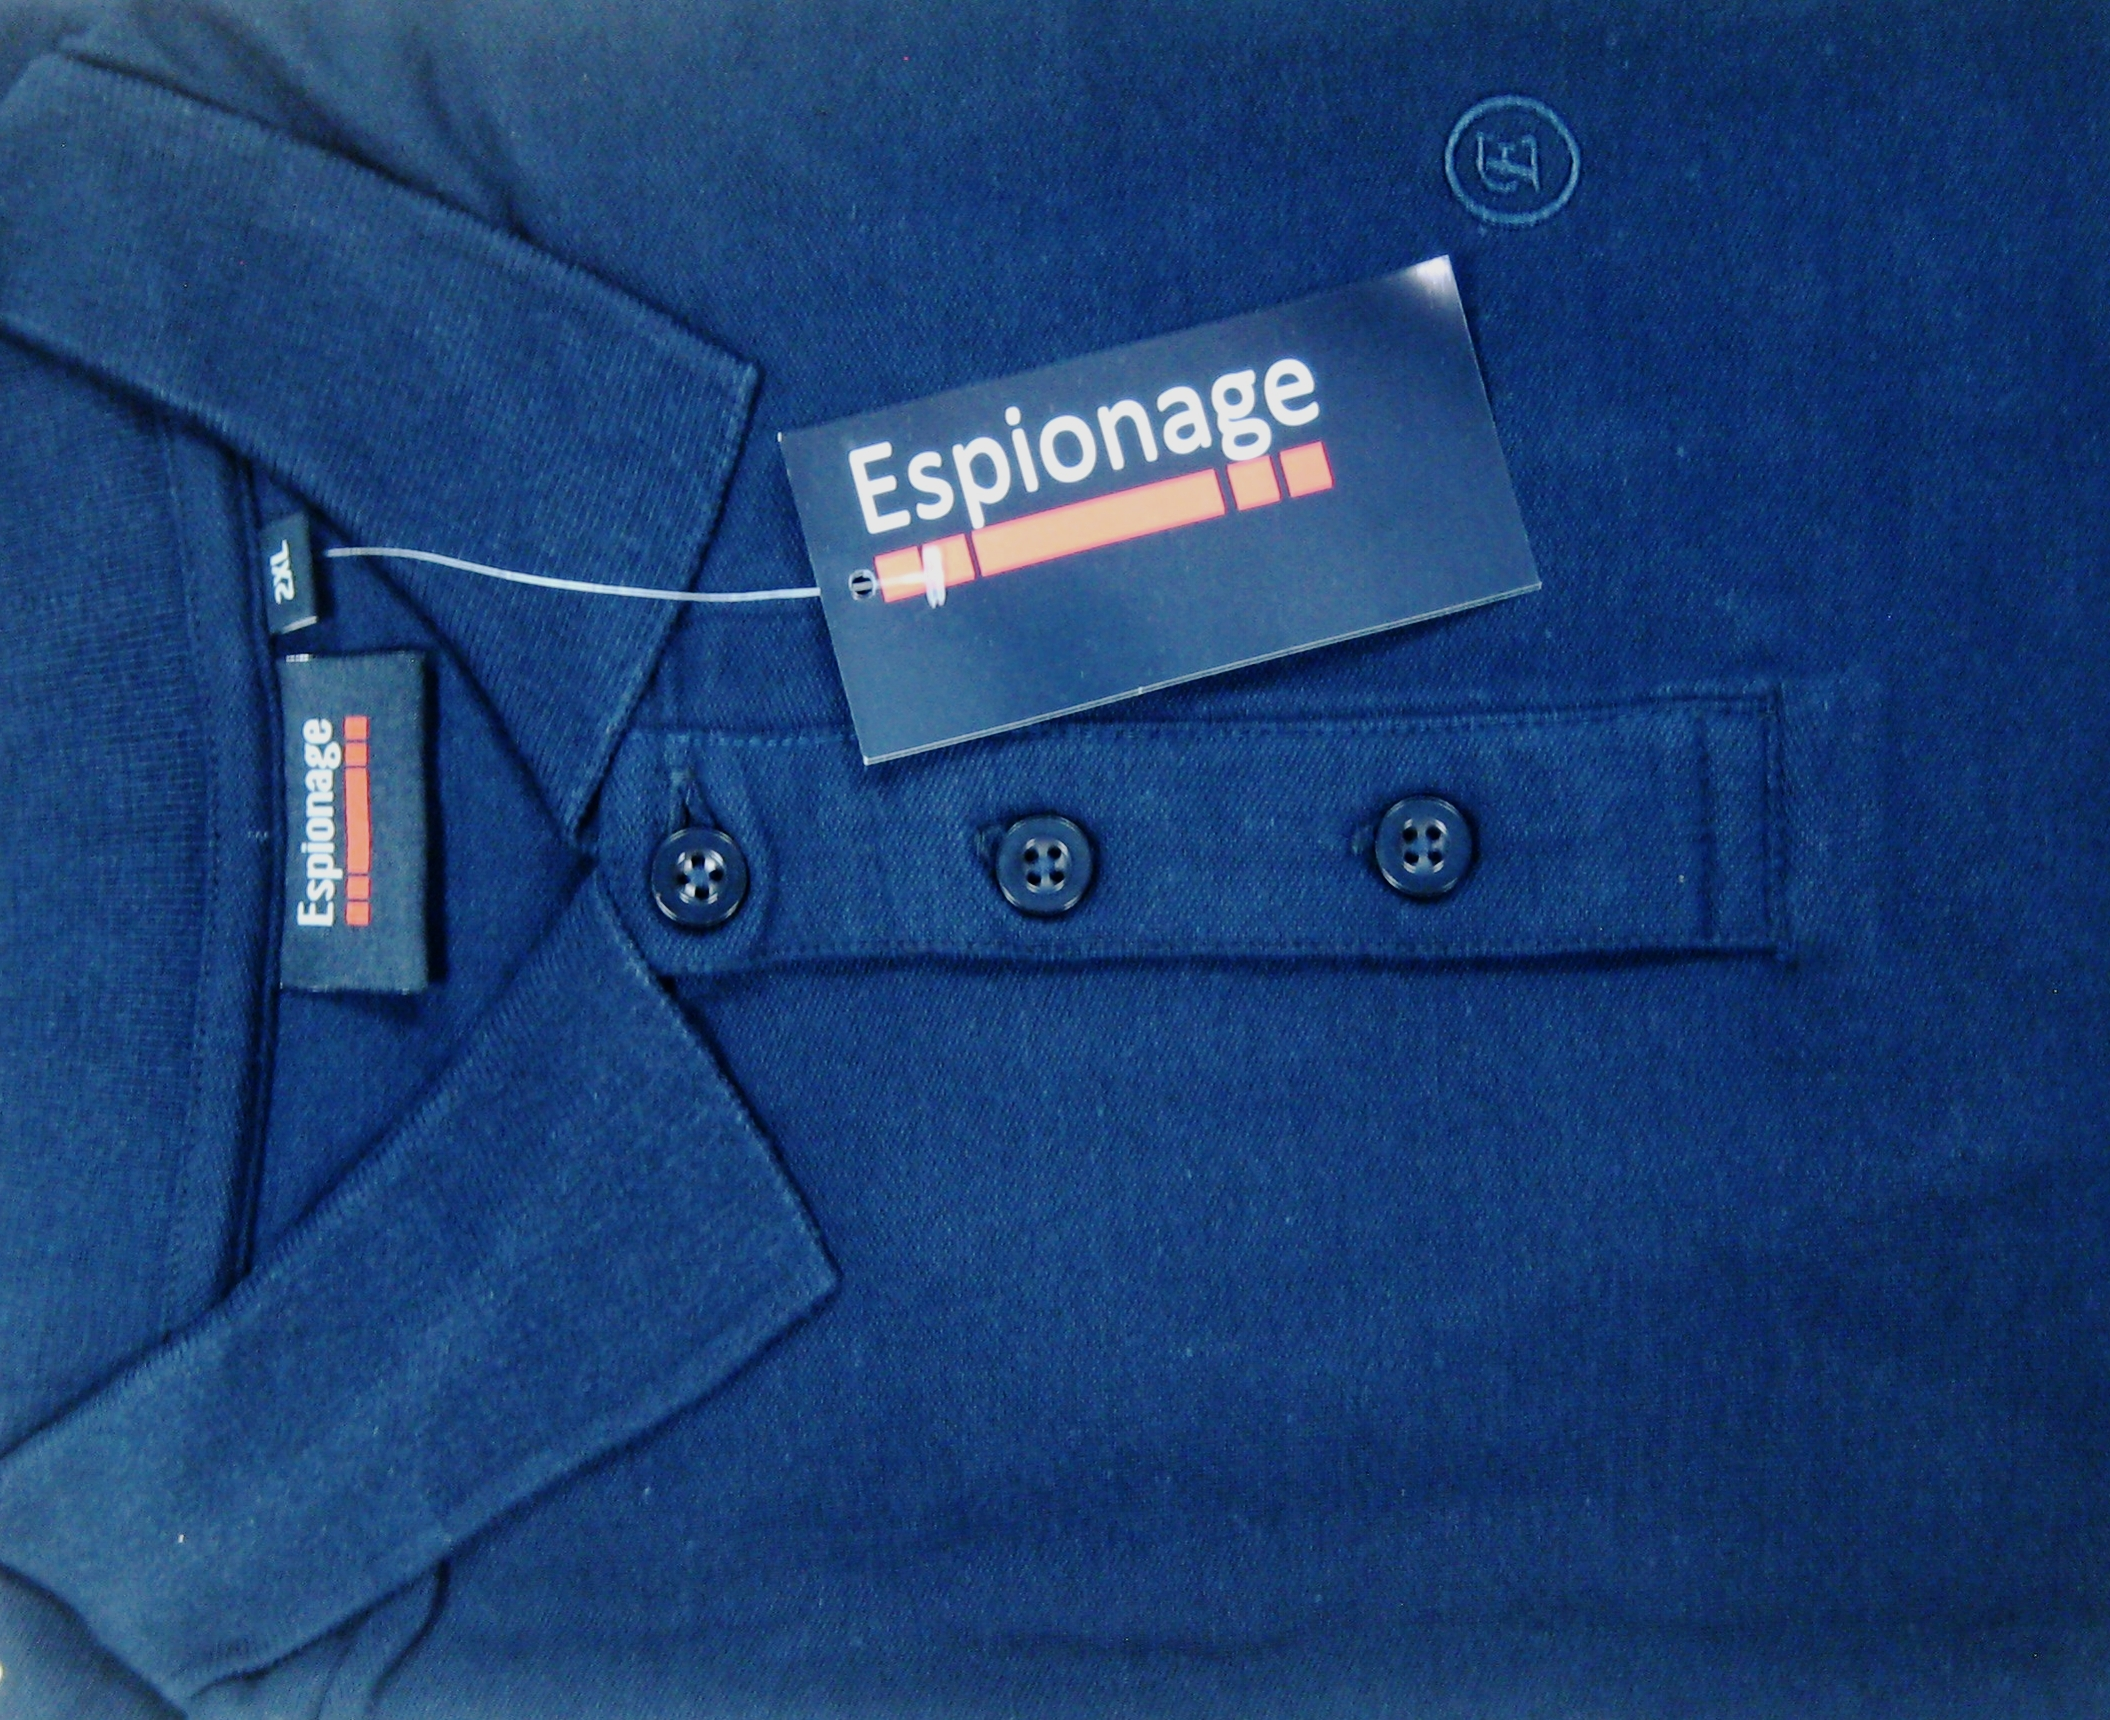 Polos by Espionage -